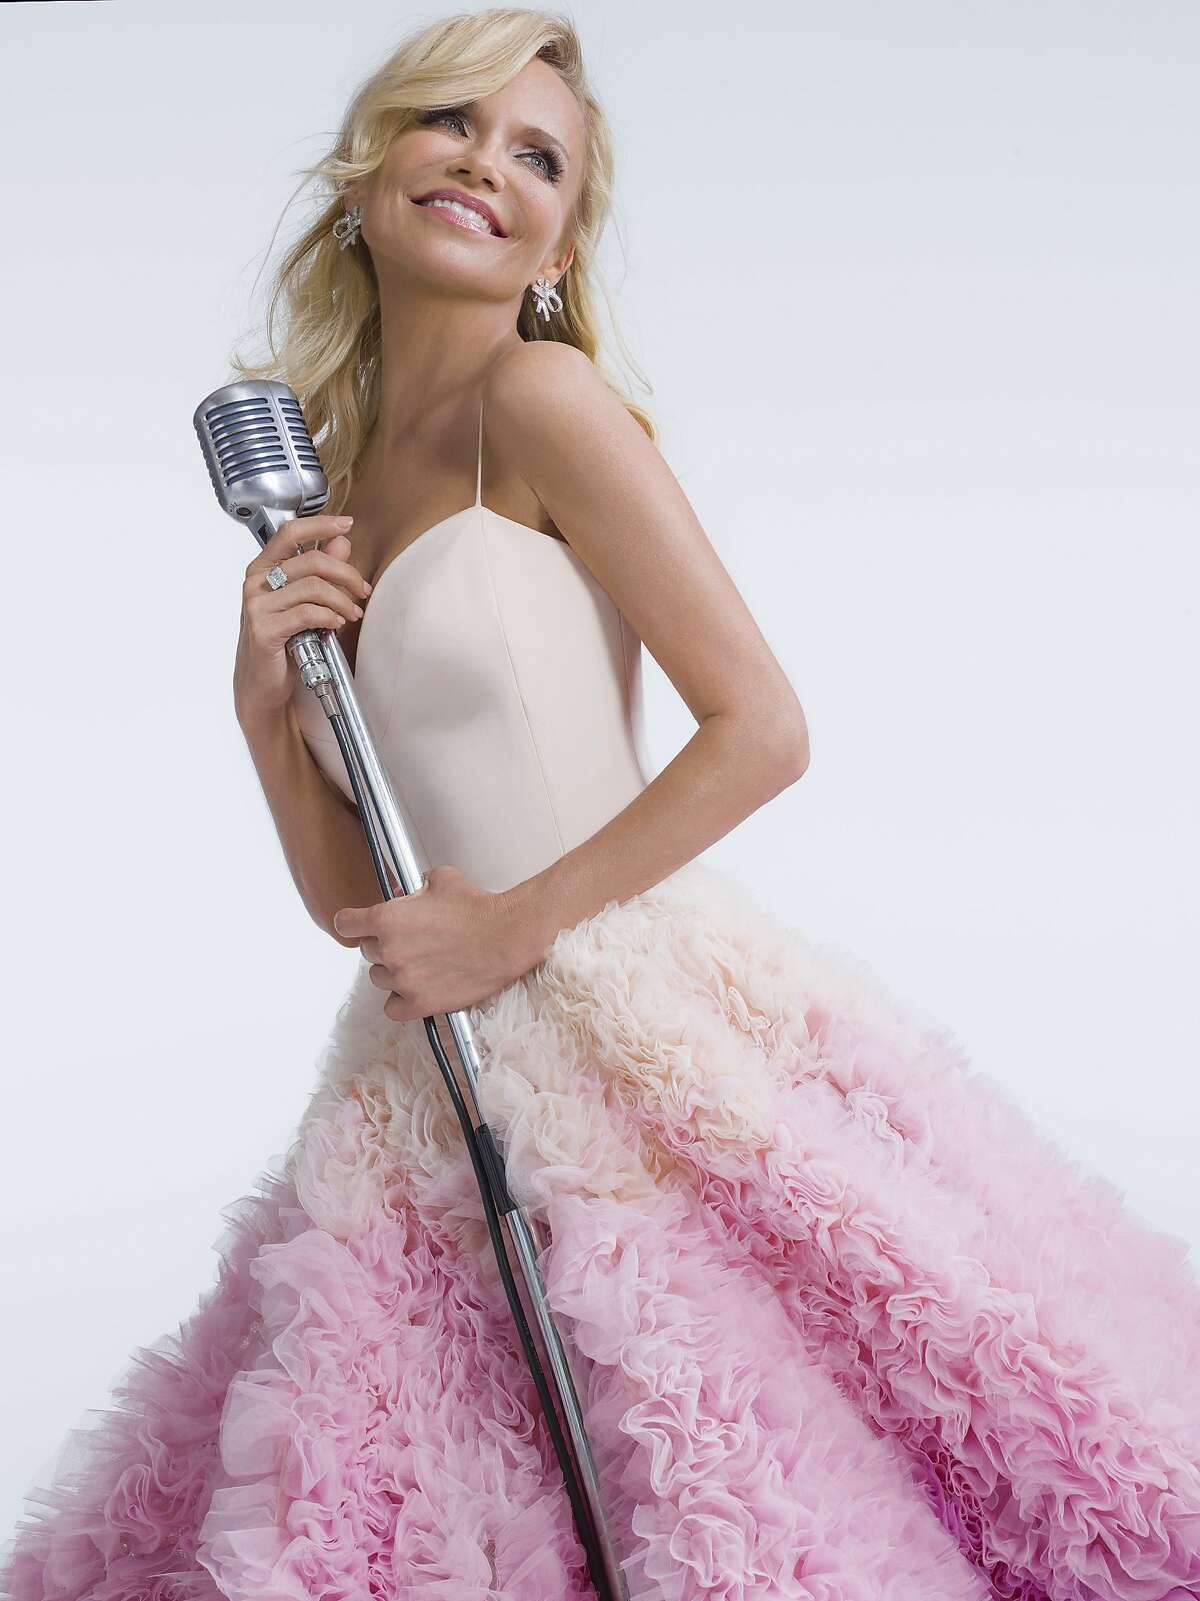 Kristin Chenoweth will be performing songs from her new album at the annual Ridgefield Playhouse Fall Gala on Saturday. Find out more.